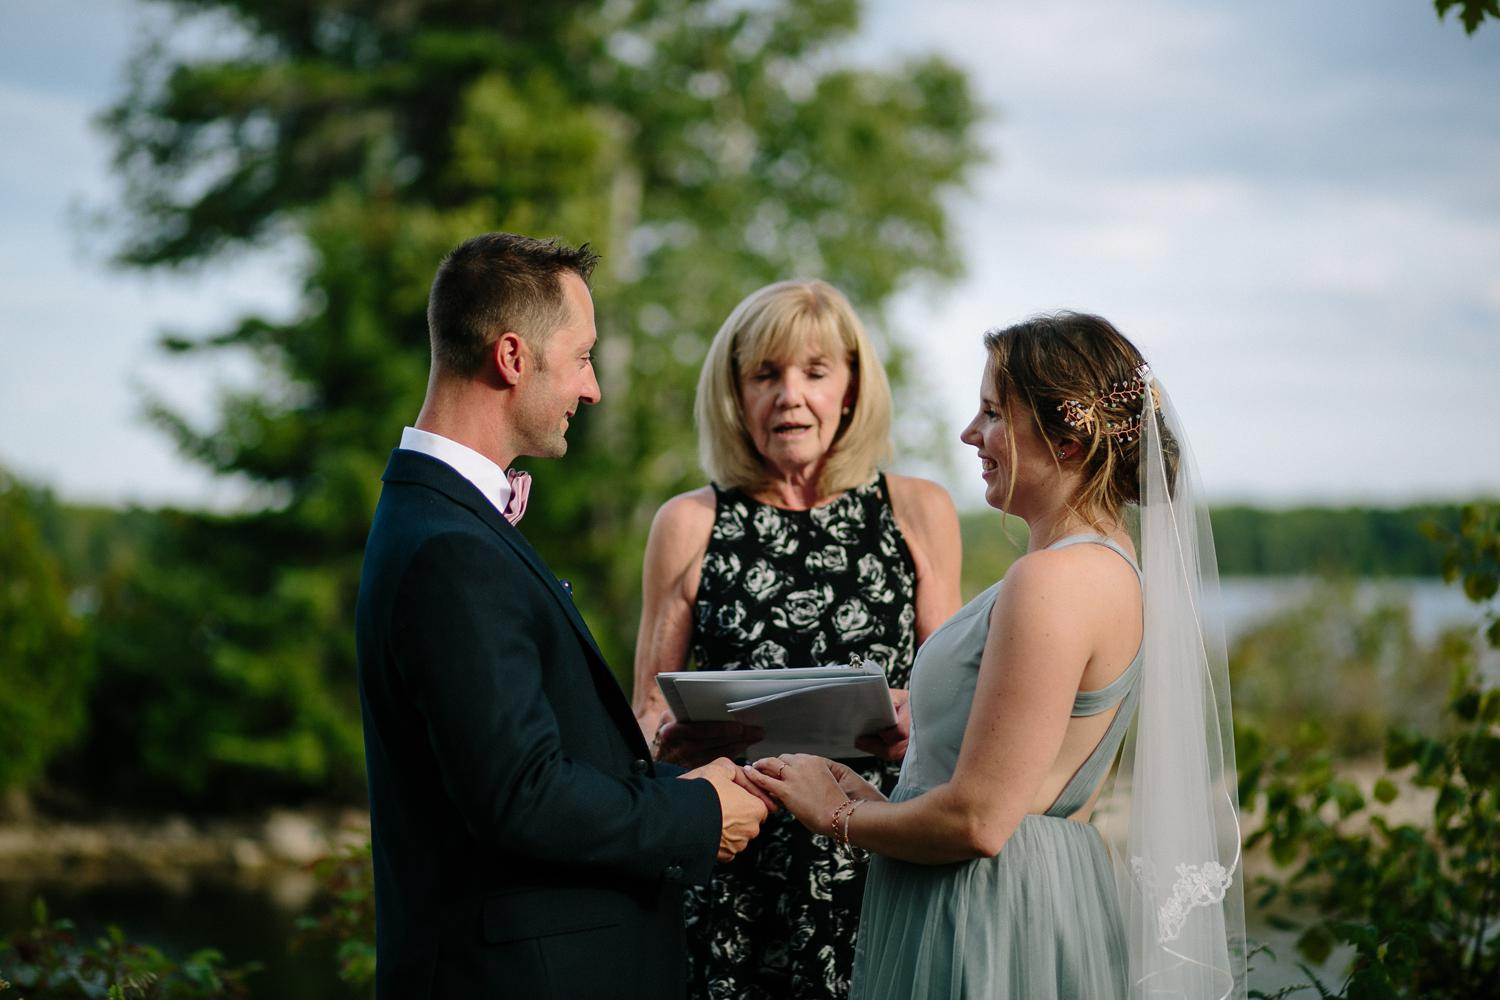 kerry ford photography - small intimate backyard rideau lake island wedding perth ontario-042.jpg